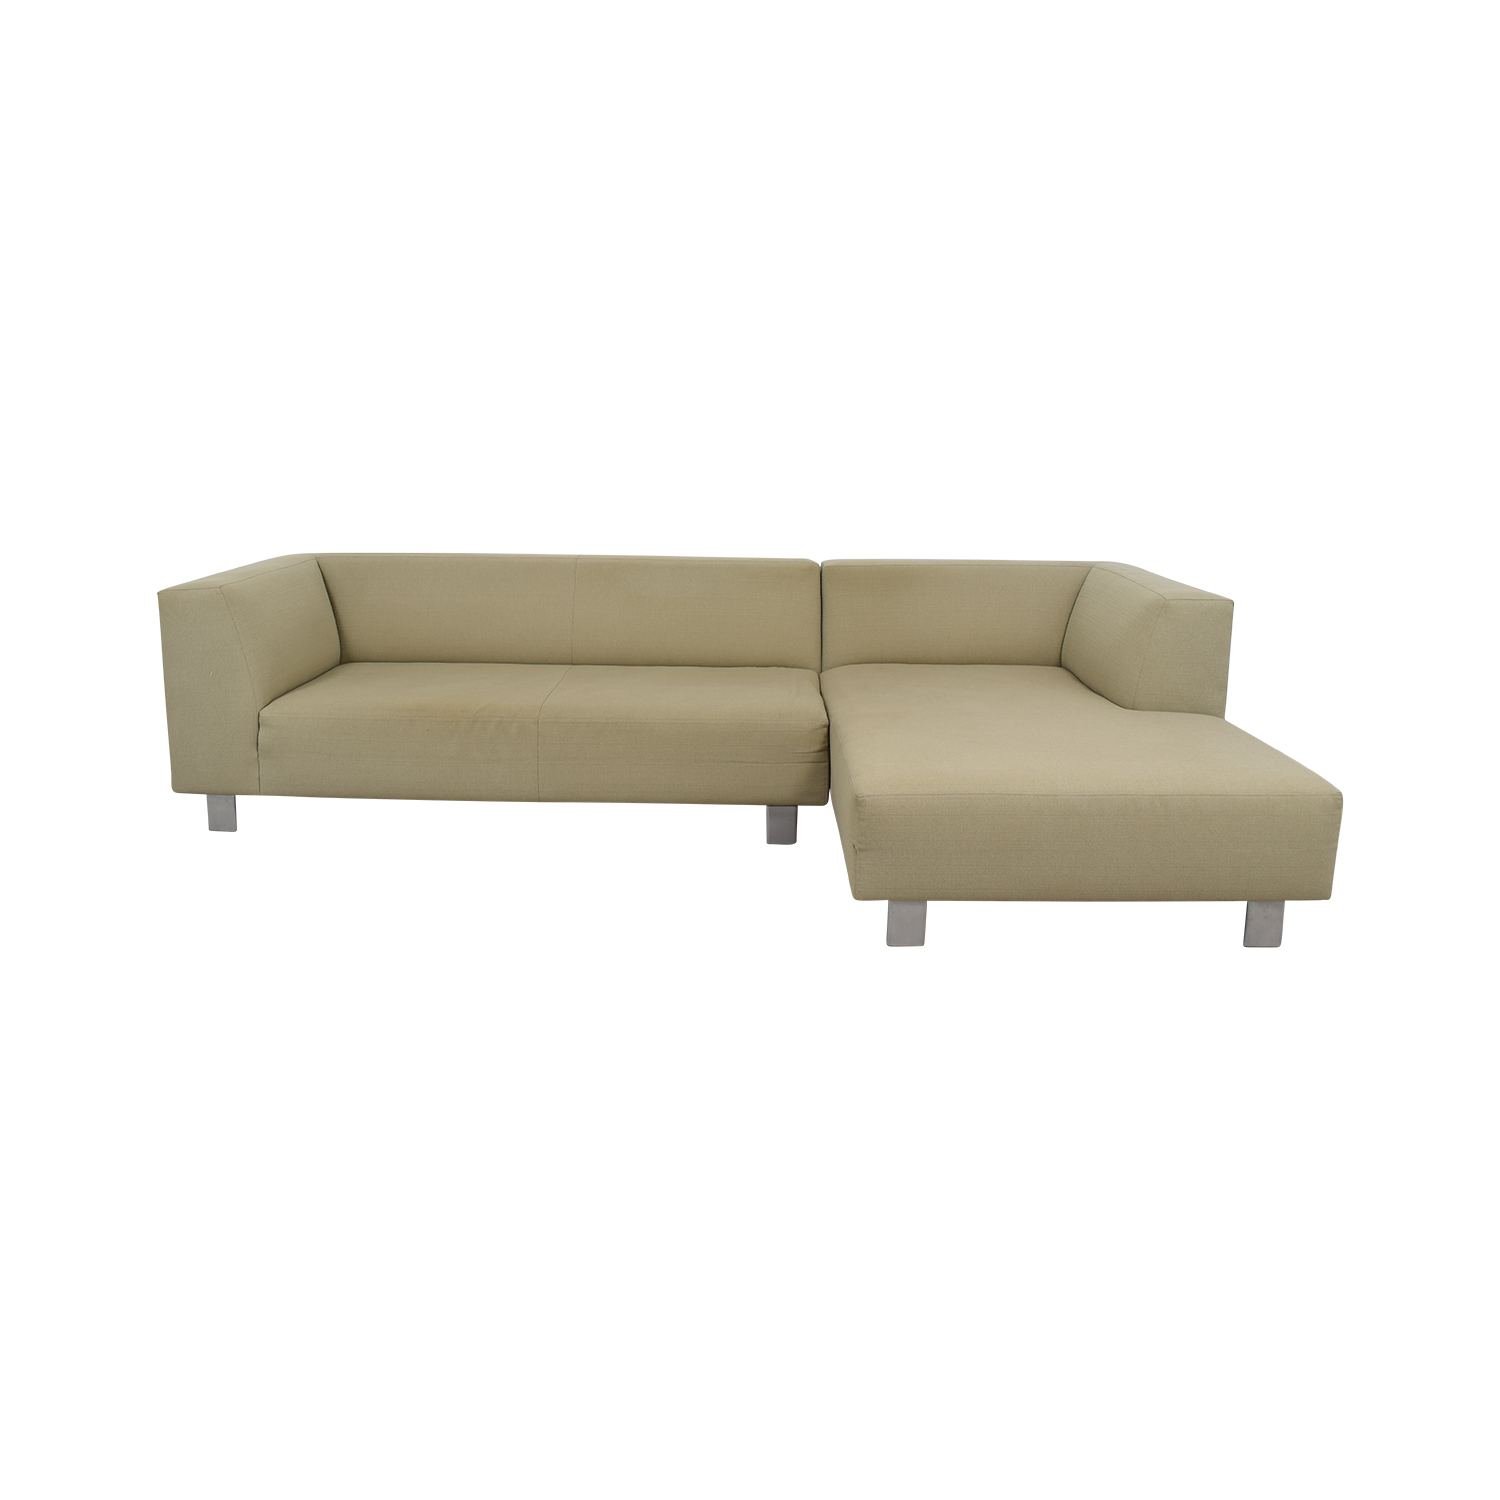 shop Room & Board Beige L-Shaped Sectional Room & Board Sofas